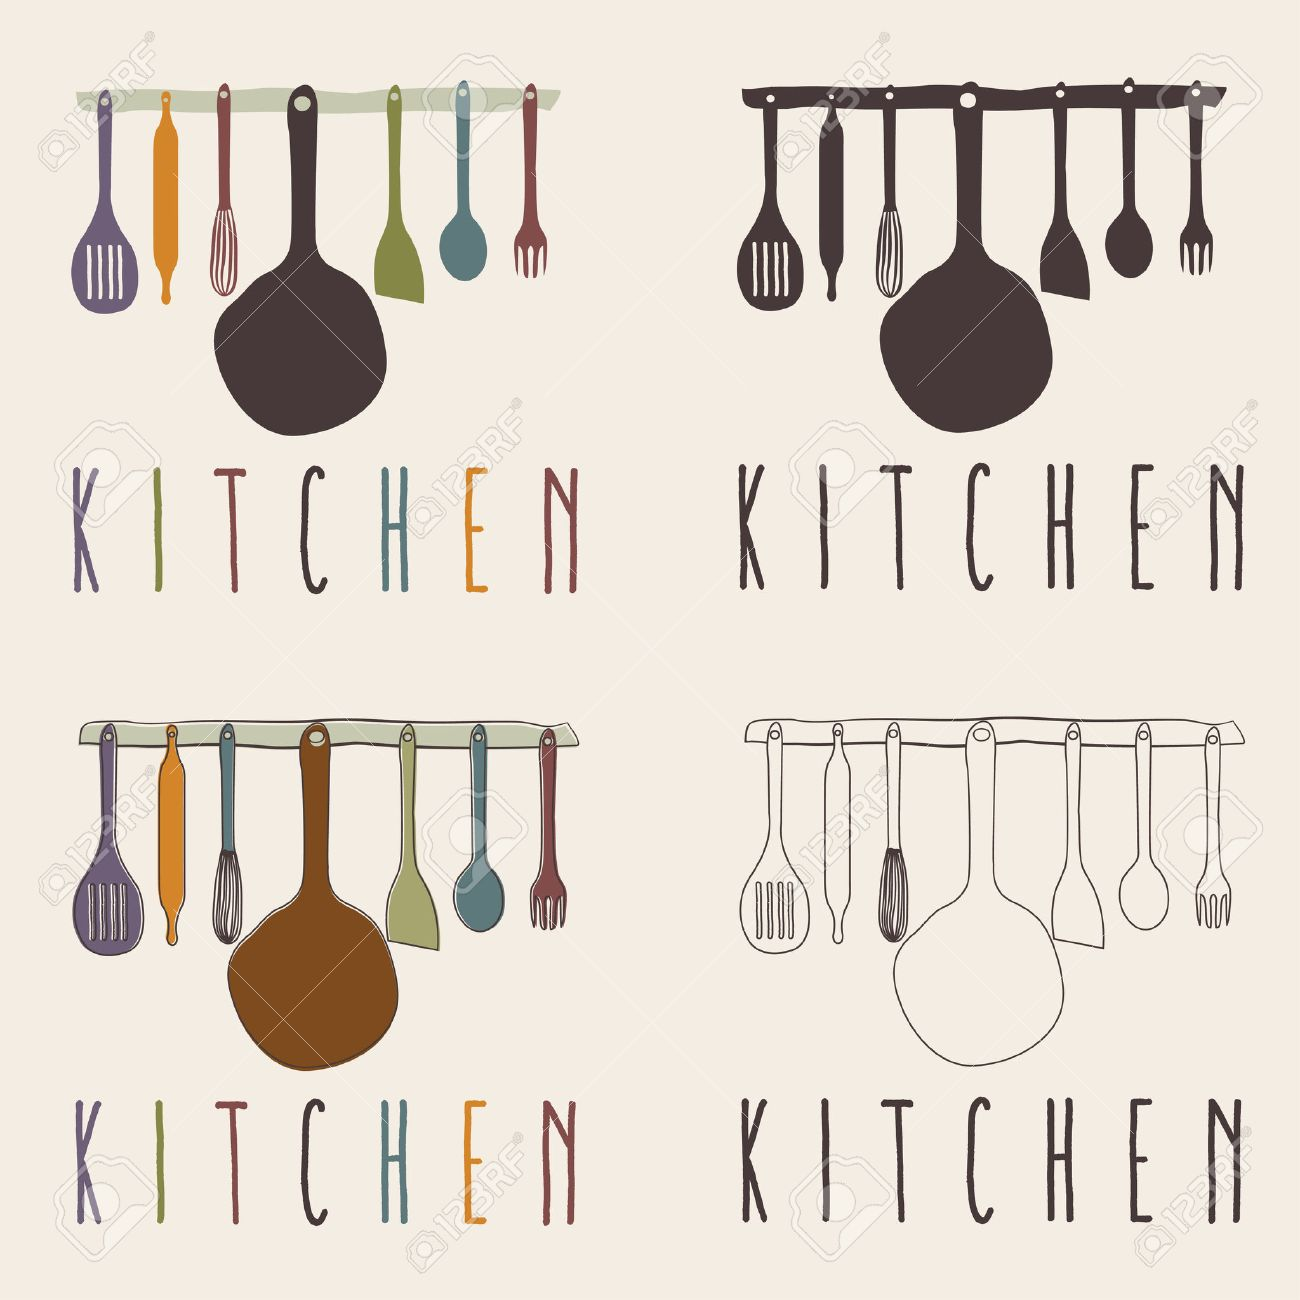 Kitchen Utensils Set Vector Design Template Royalty Free Cliparts ...